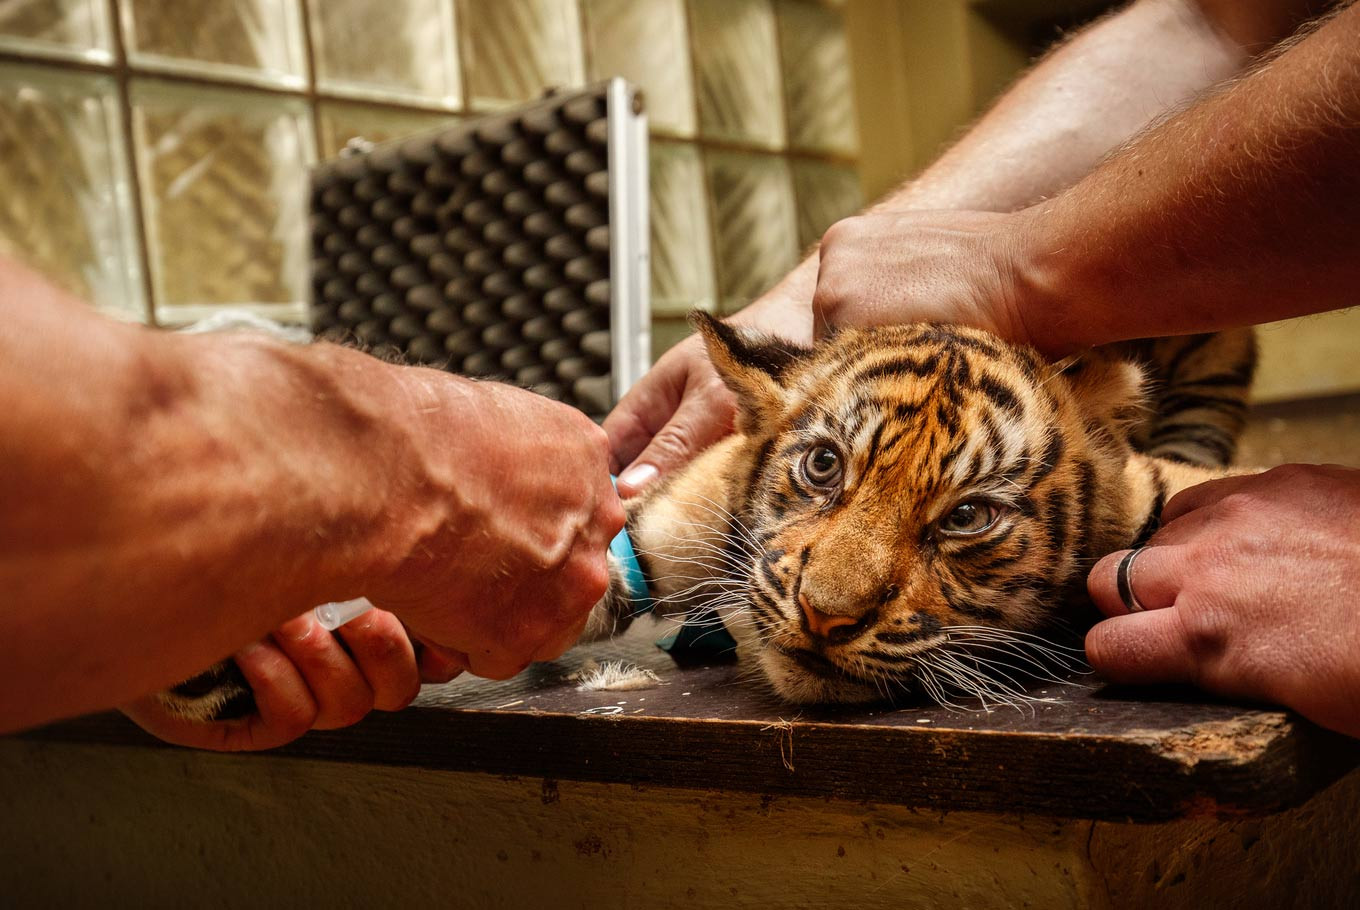 Two endangered tigers born in North Sumatra